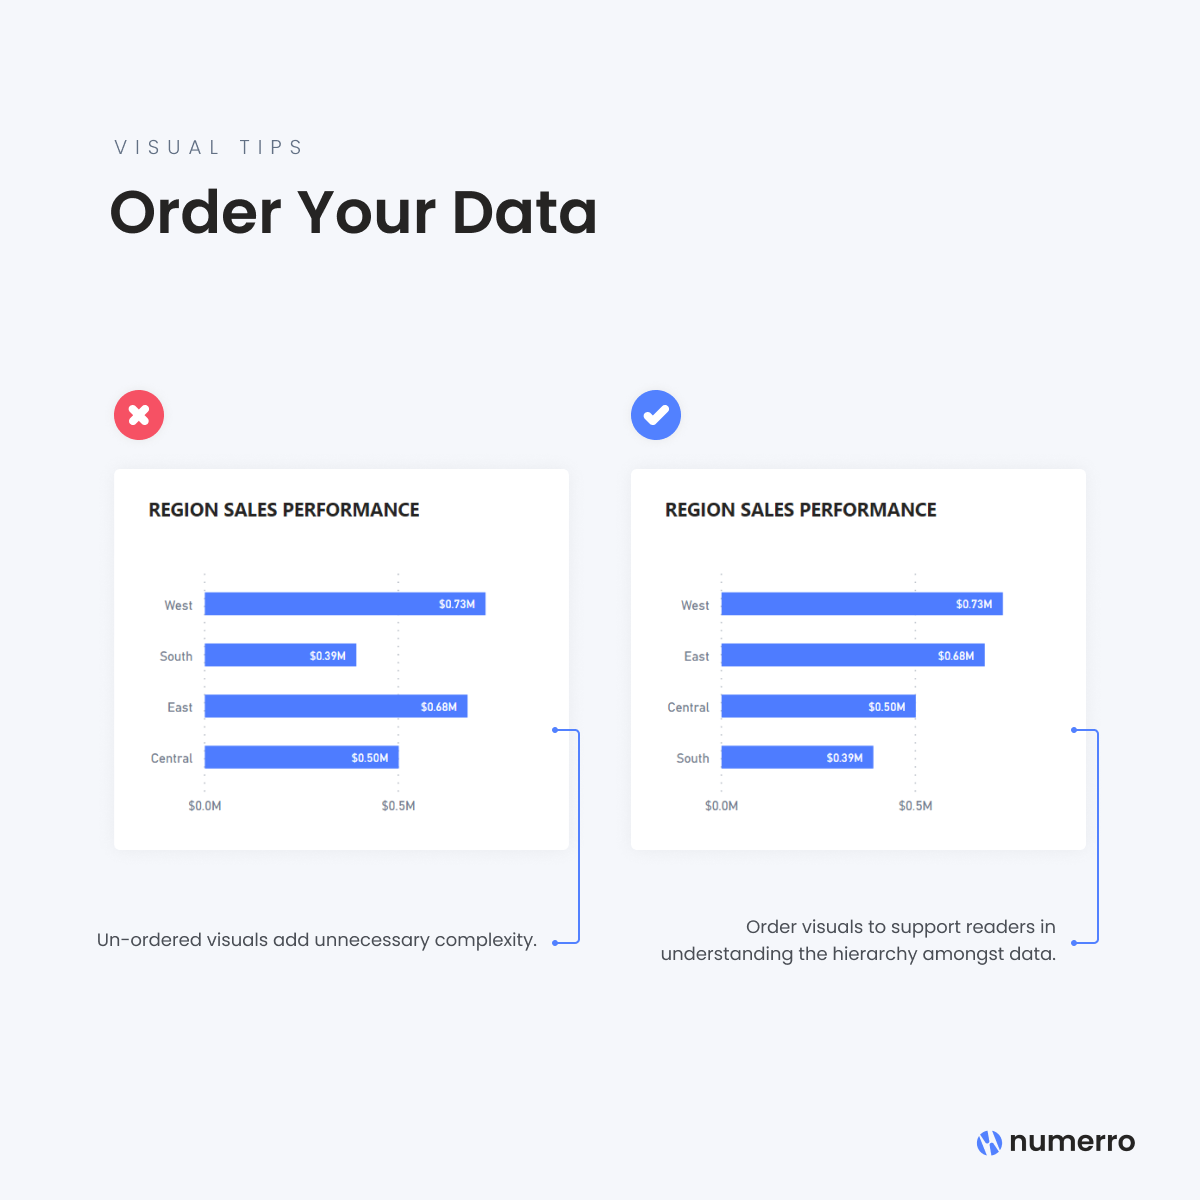 Order Your Data